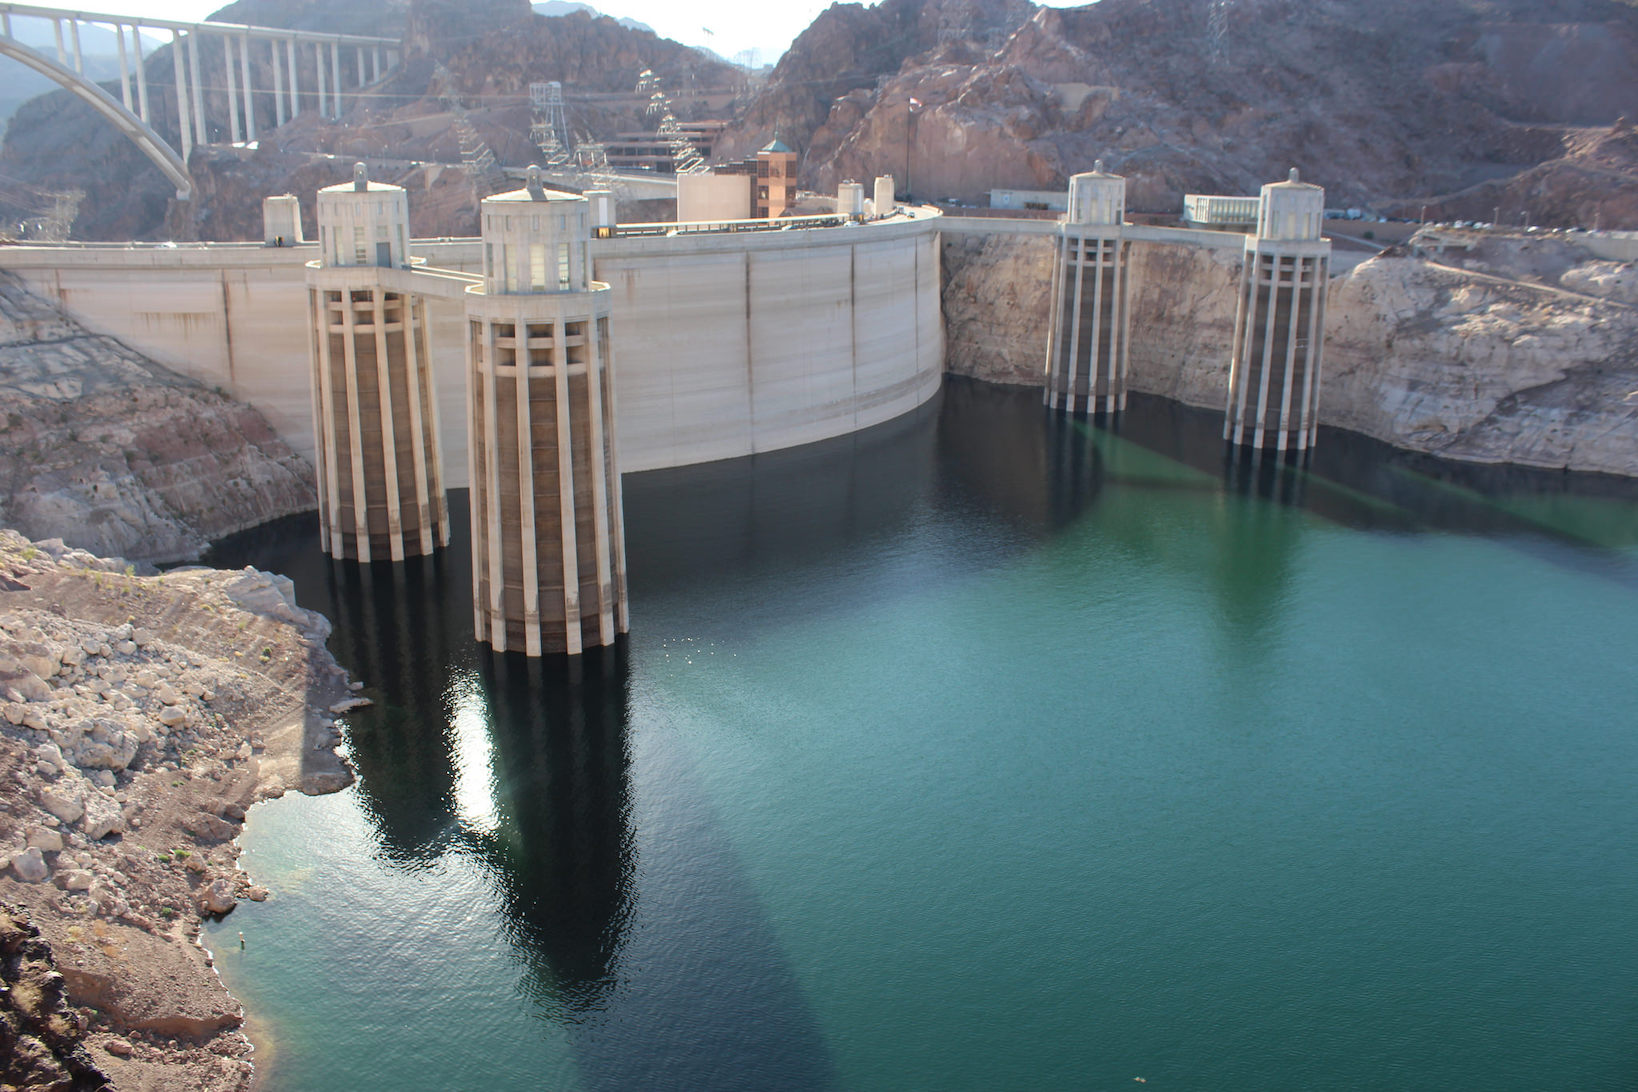 Hoover Dam Intake Towers on the Colorado River